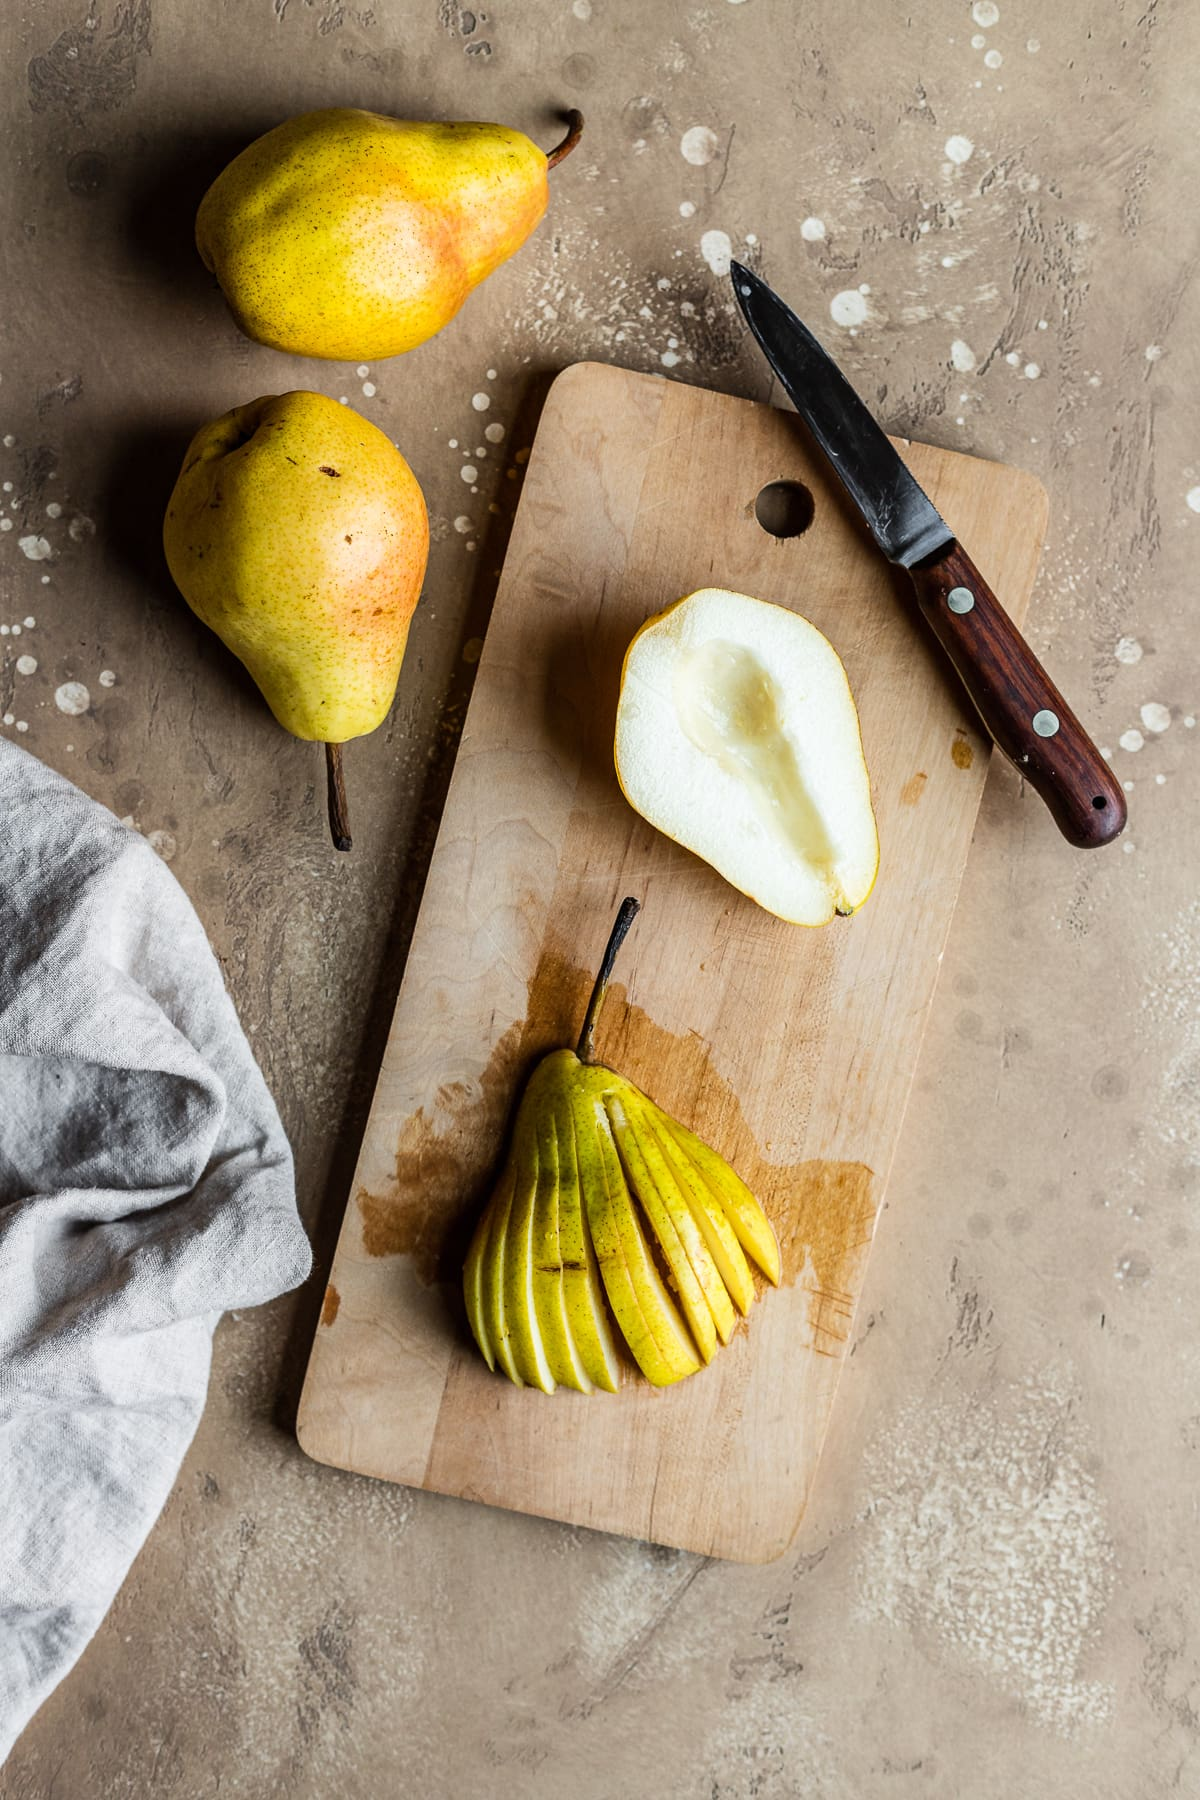 A wooden cutting board with two pear halves resting on it. One is face up with the core removed, and another is face down and has been cut into a fan shape with thin slices but the top of the pear intact. A wooden knife rests on the board, and two whole pears are at top left. A pale linen napkin is at bottom left. The scene has a textured tan stone background.